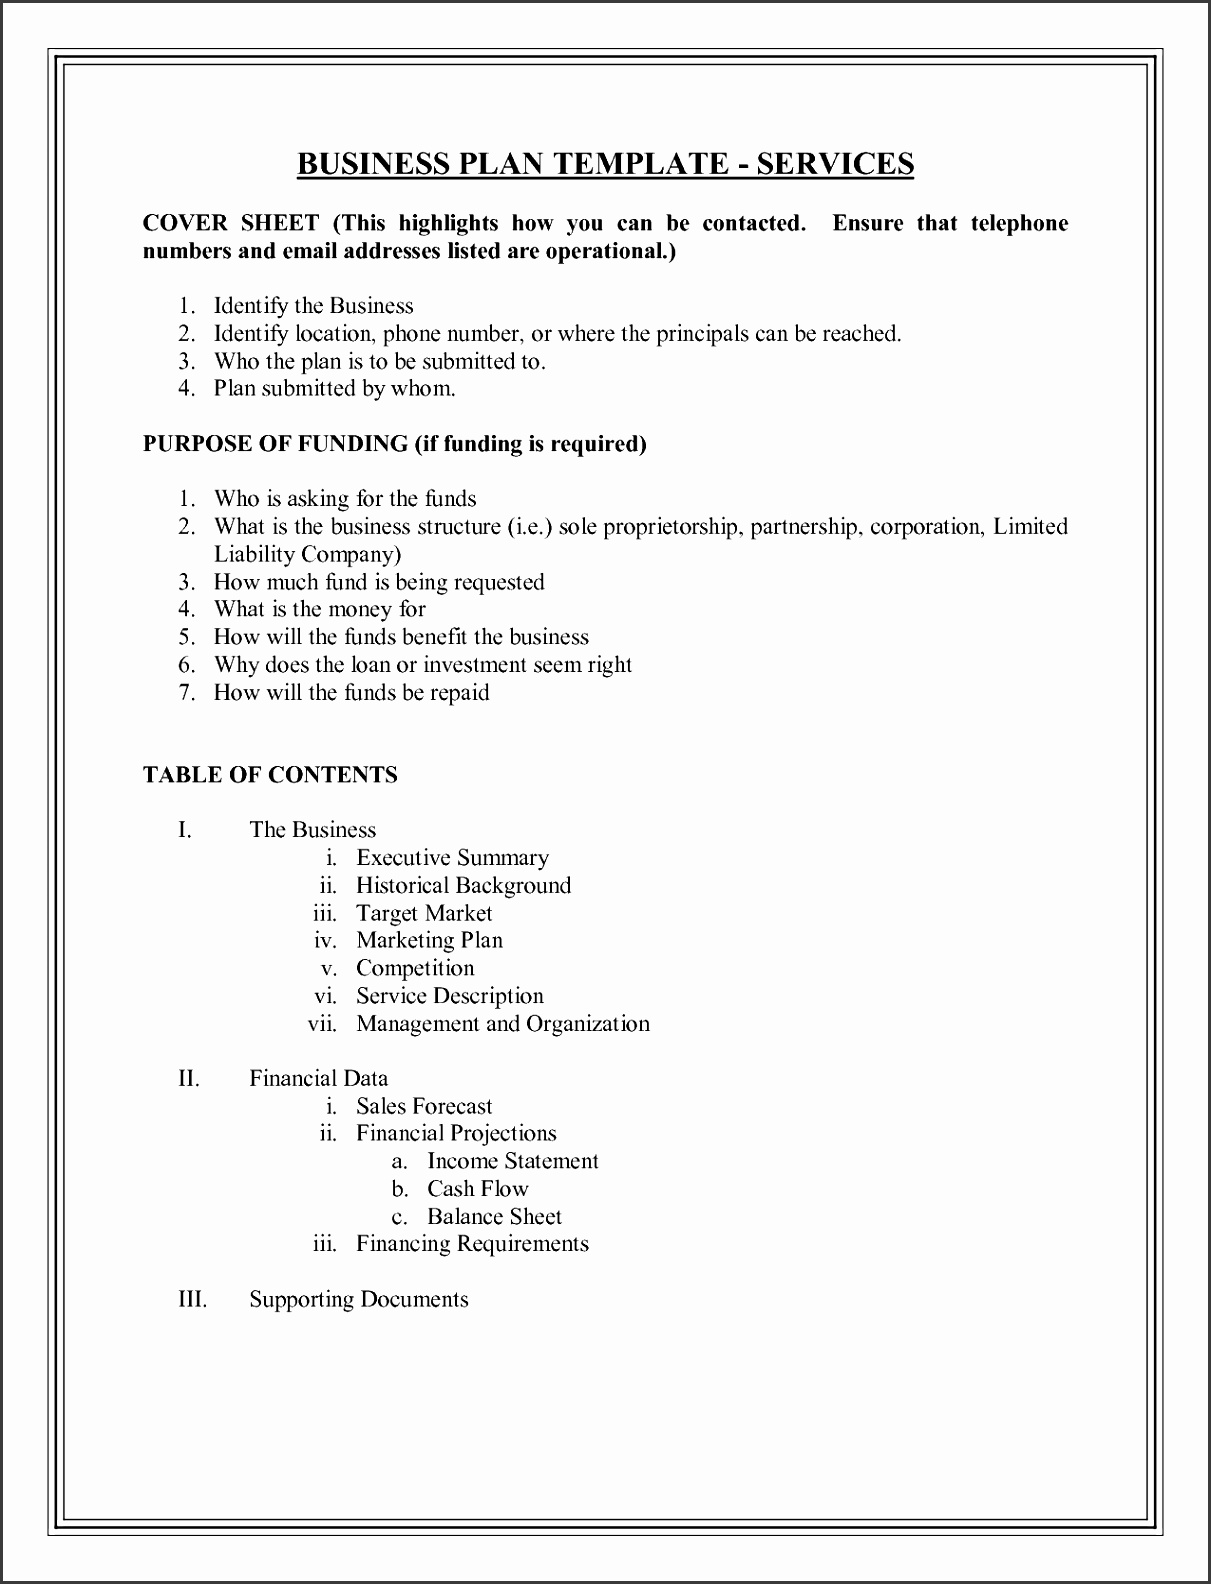 Sample Business Plan Format Small Templates Documents And Pdfs Executive Summary Free Basic Tem For Coffee Shop Presentation Non Profit